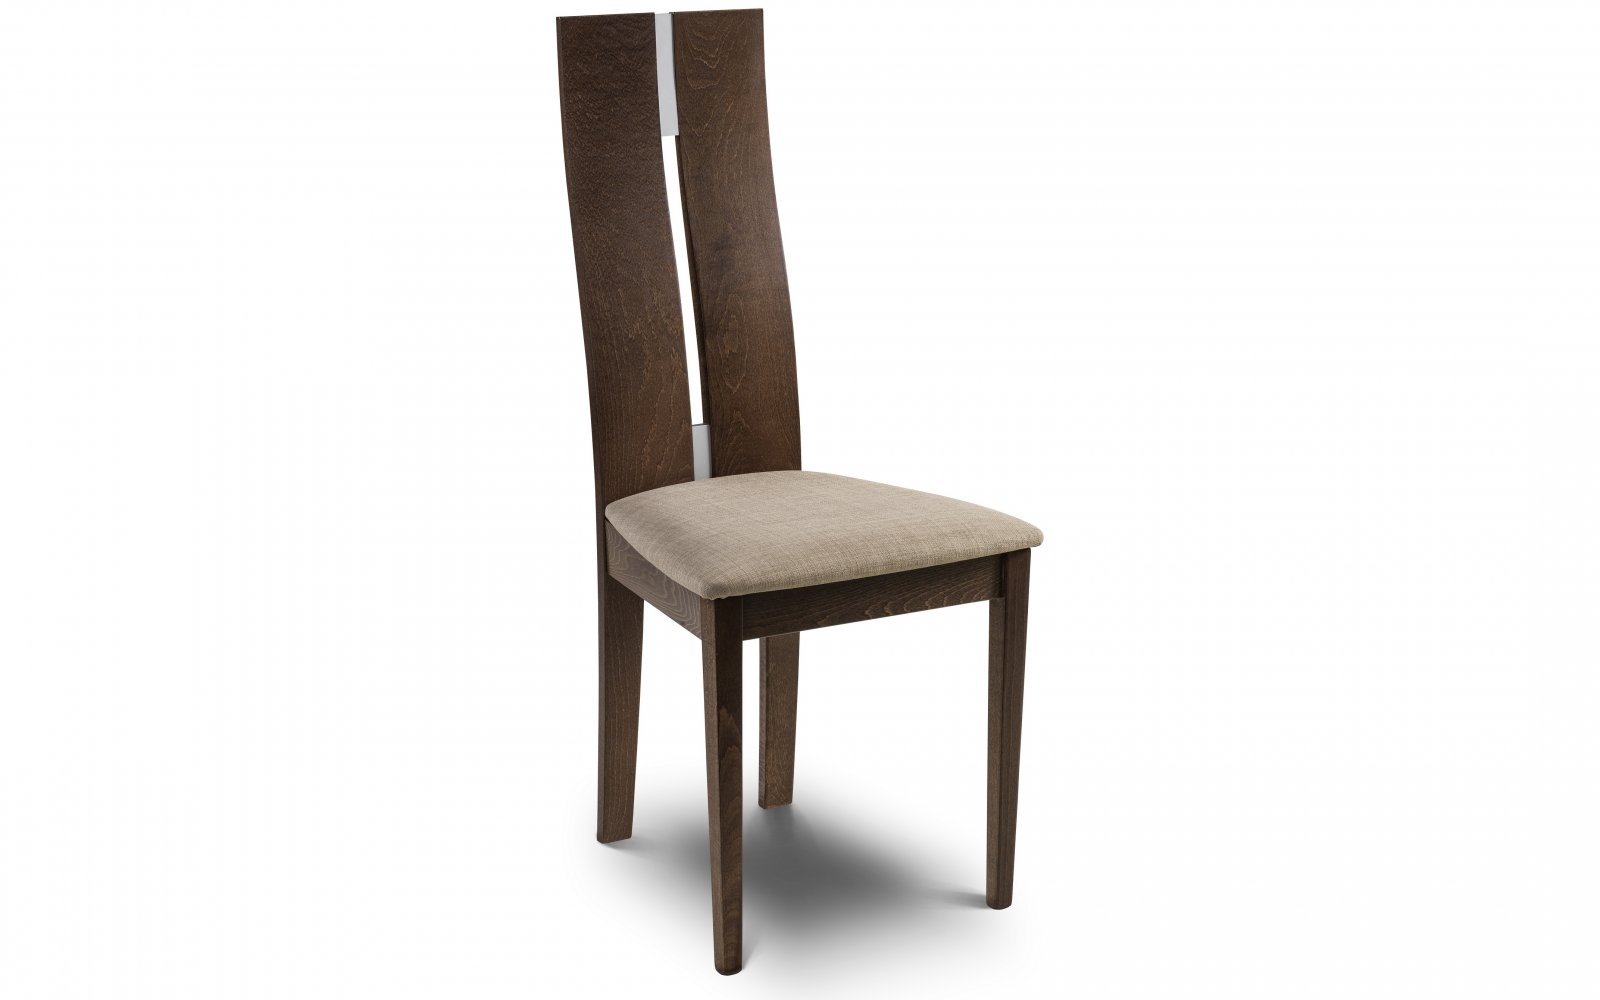 https://www.firstfurniture.co.uk/pub/media/catalog/product/7/1/716-photo-xxl.jpg